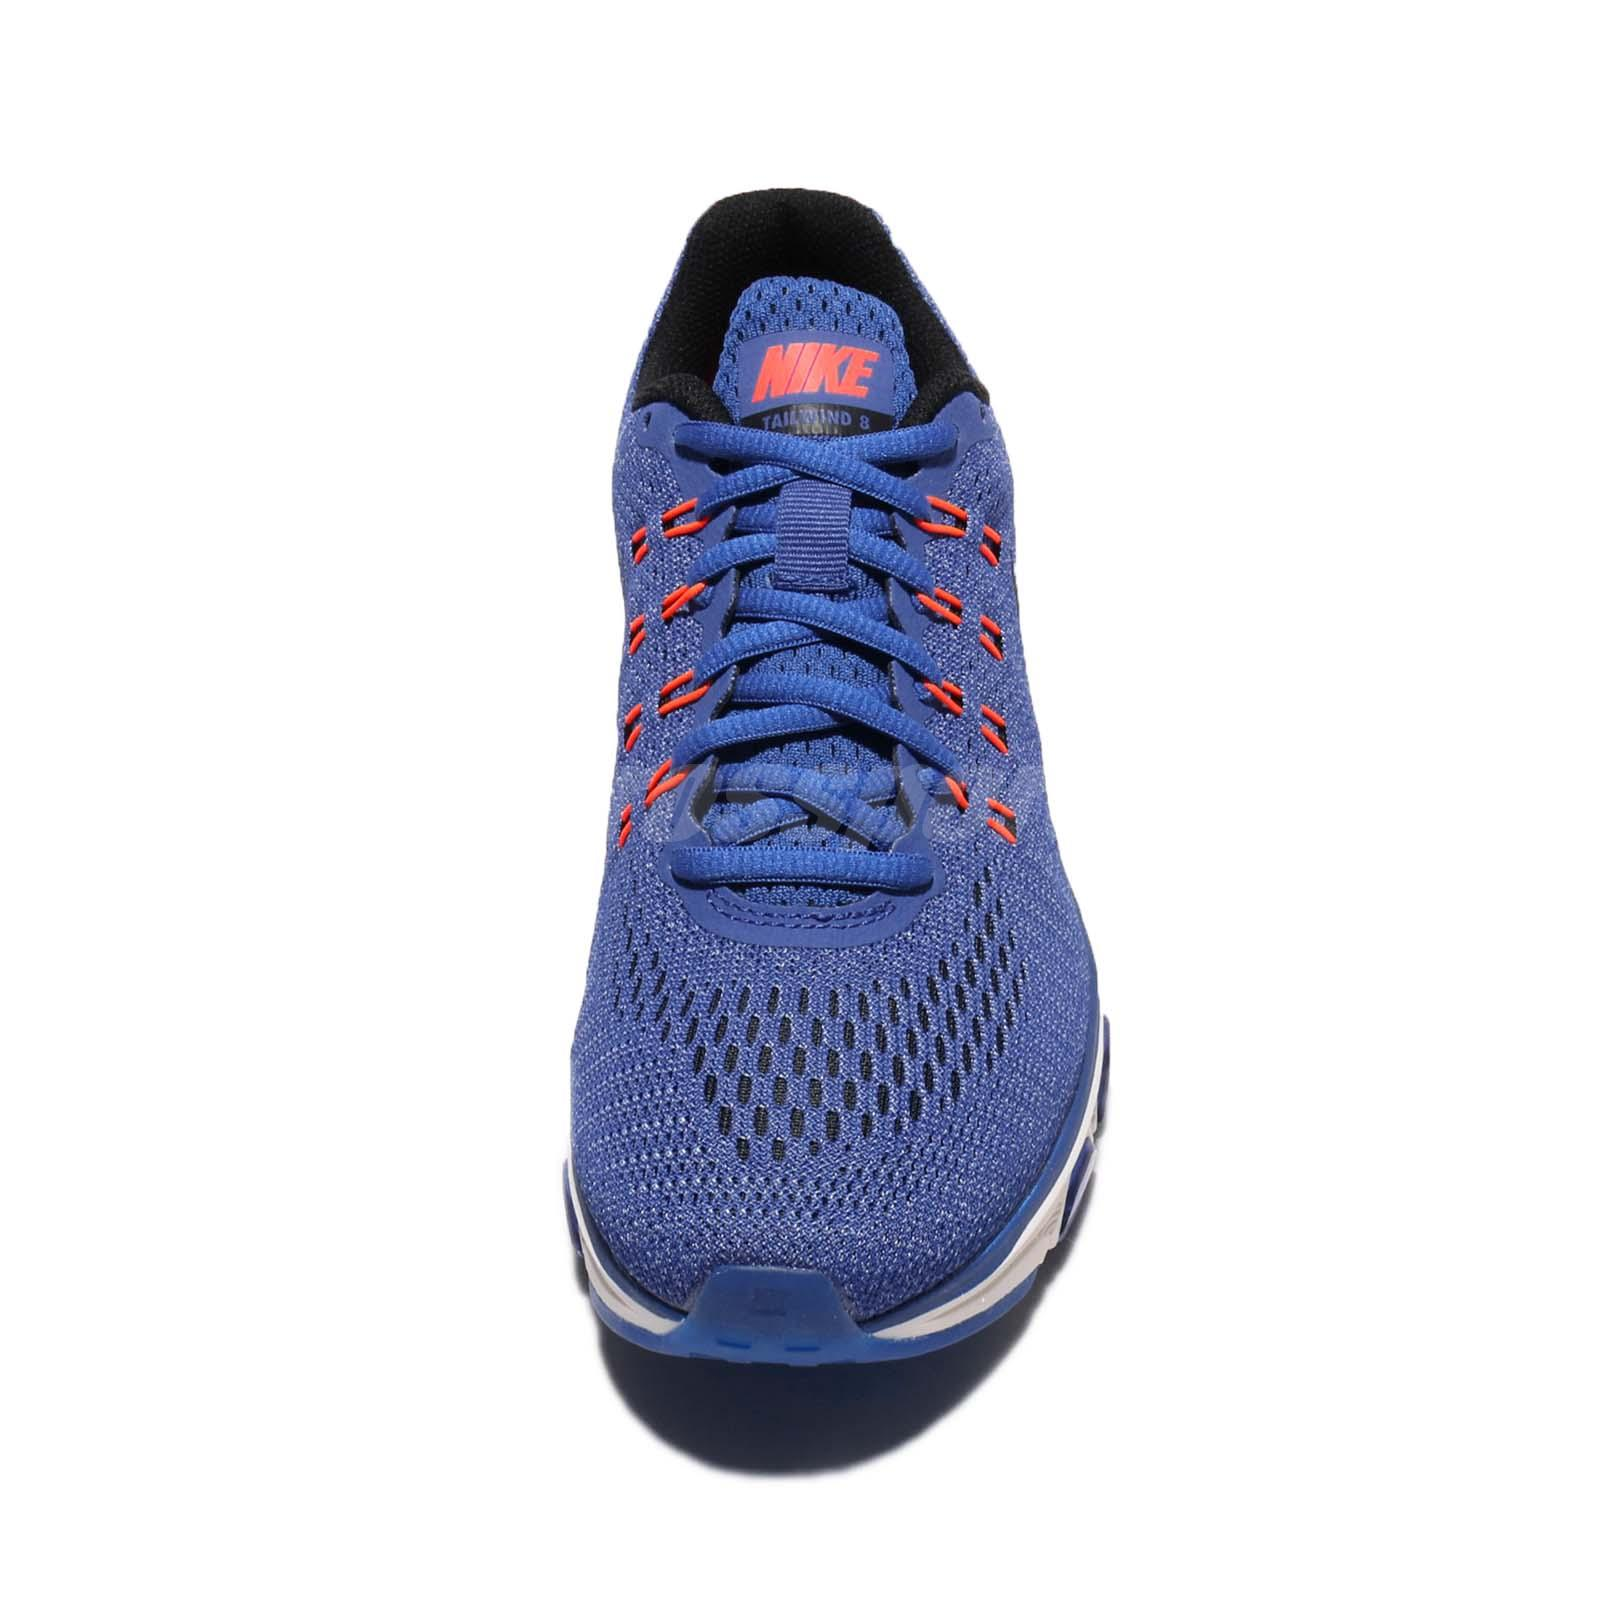 n i k e air max tailwind 8 racer blue womens running shoes